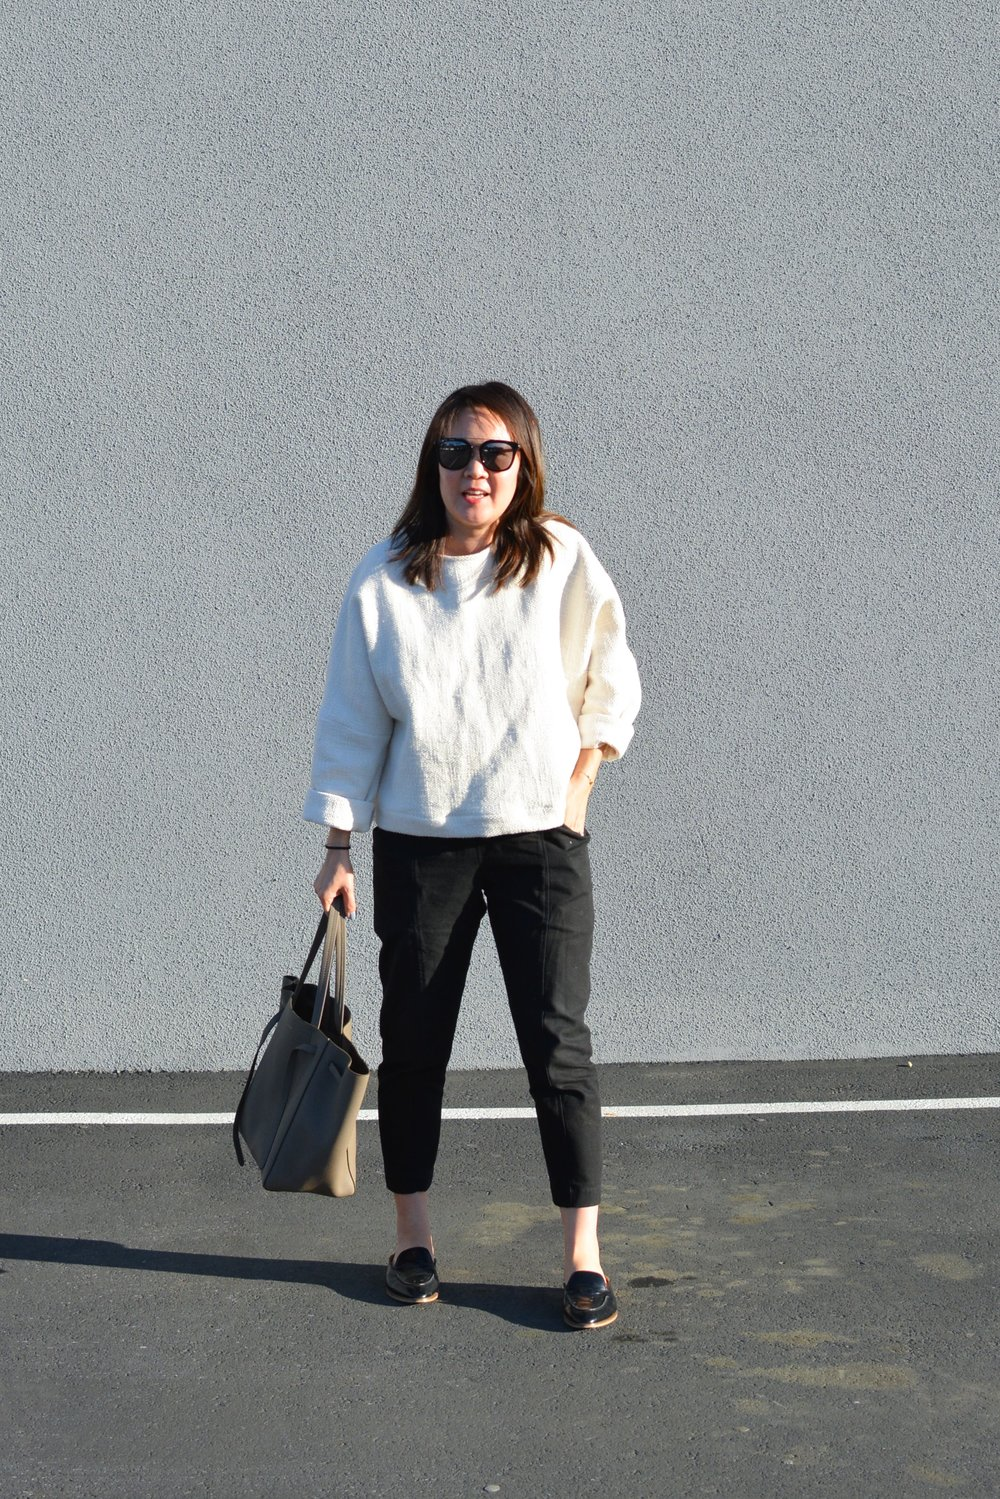 Jamie + the Jones Review Heavy Weight T Sweater (2 of 2)-min.jpg